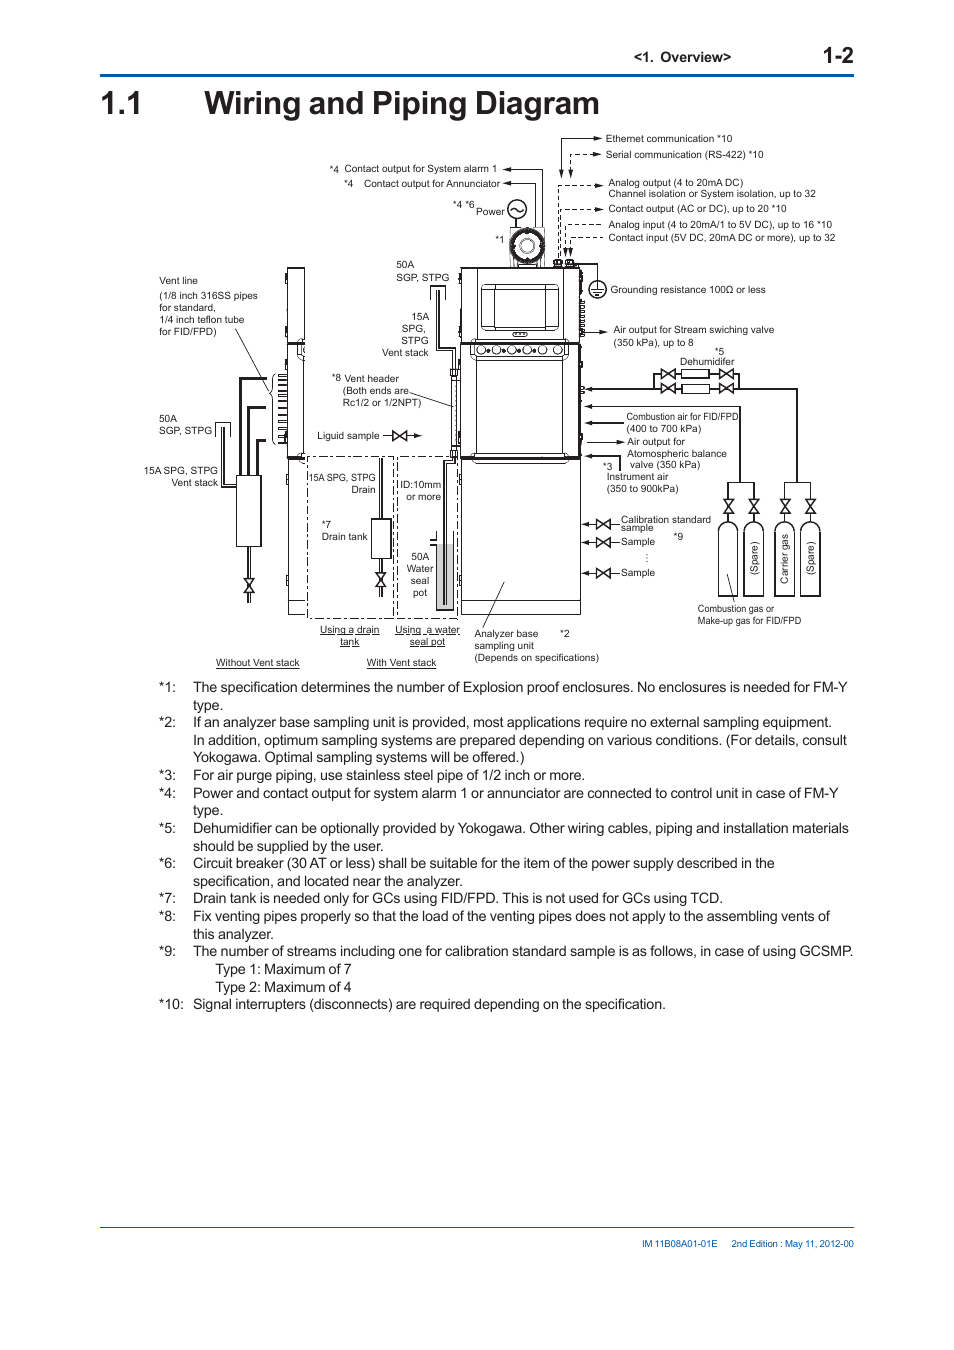 1    wiring    and piping    diagram      Yokogawa GC8000 Process Gas